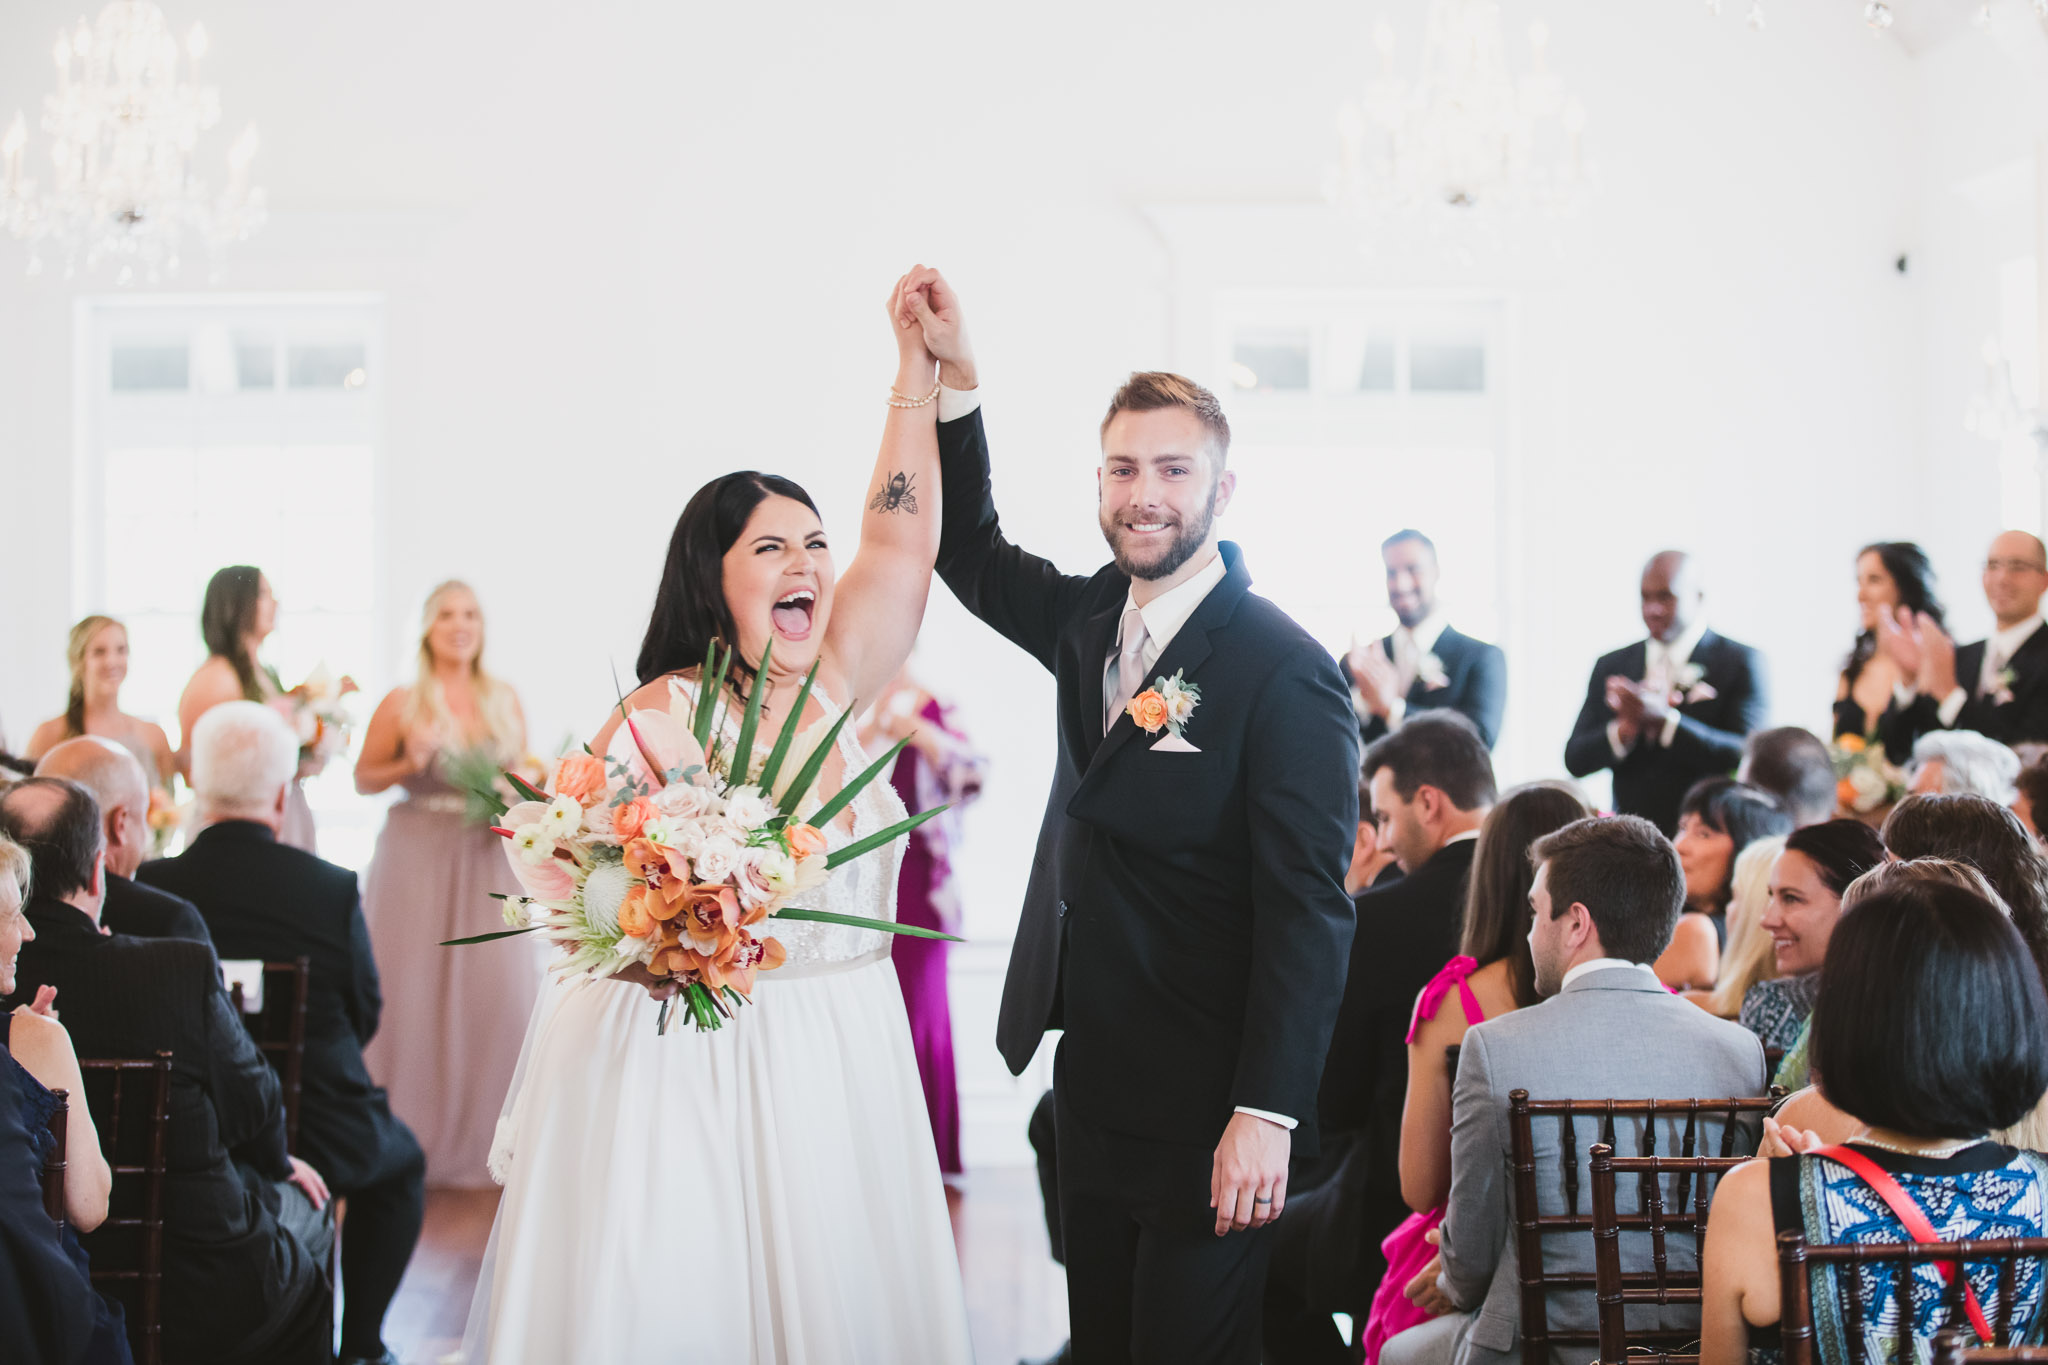 bride and groom high five each other walking down the aisle after ceremony at villa blanca